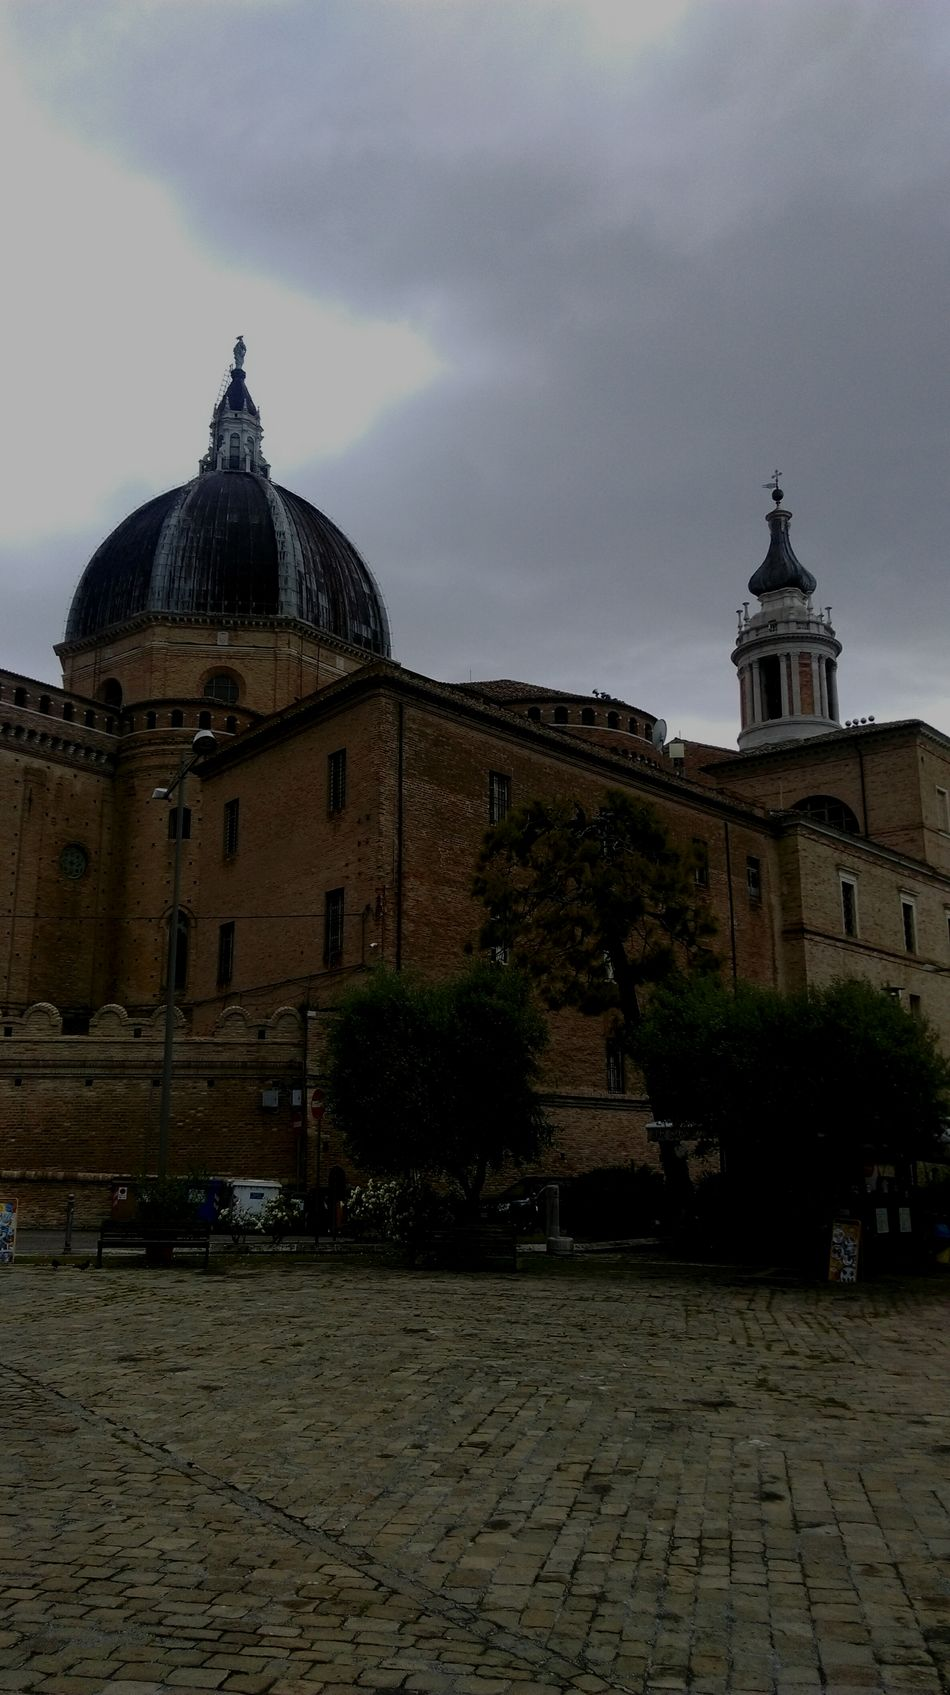 Architecture Built Structure Building Exterior Travel Destinations Loreto Marche Loreto Sculpture Statue Spirituality Religion S.Maria Home Is Where The Art Is Home Tourism Scenics Beauty In Nature Illuminated Outdoors Medieval History Cloud - Sky Sky Architecture